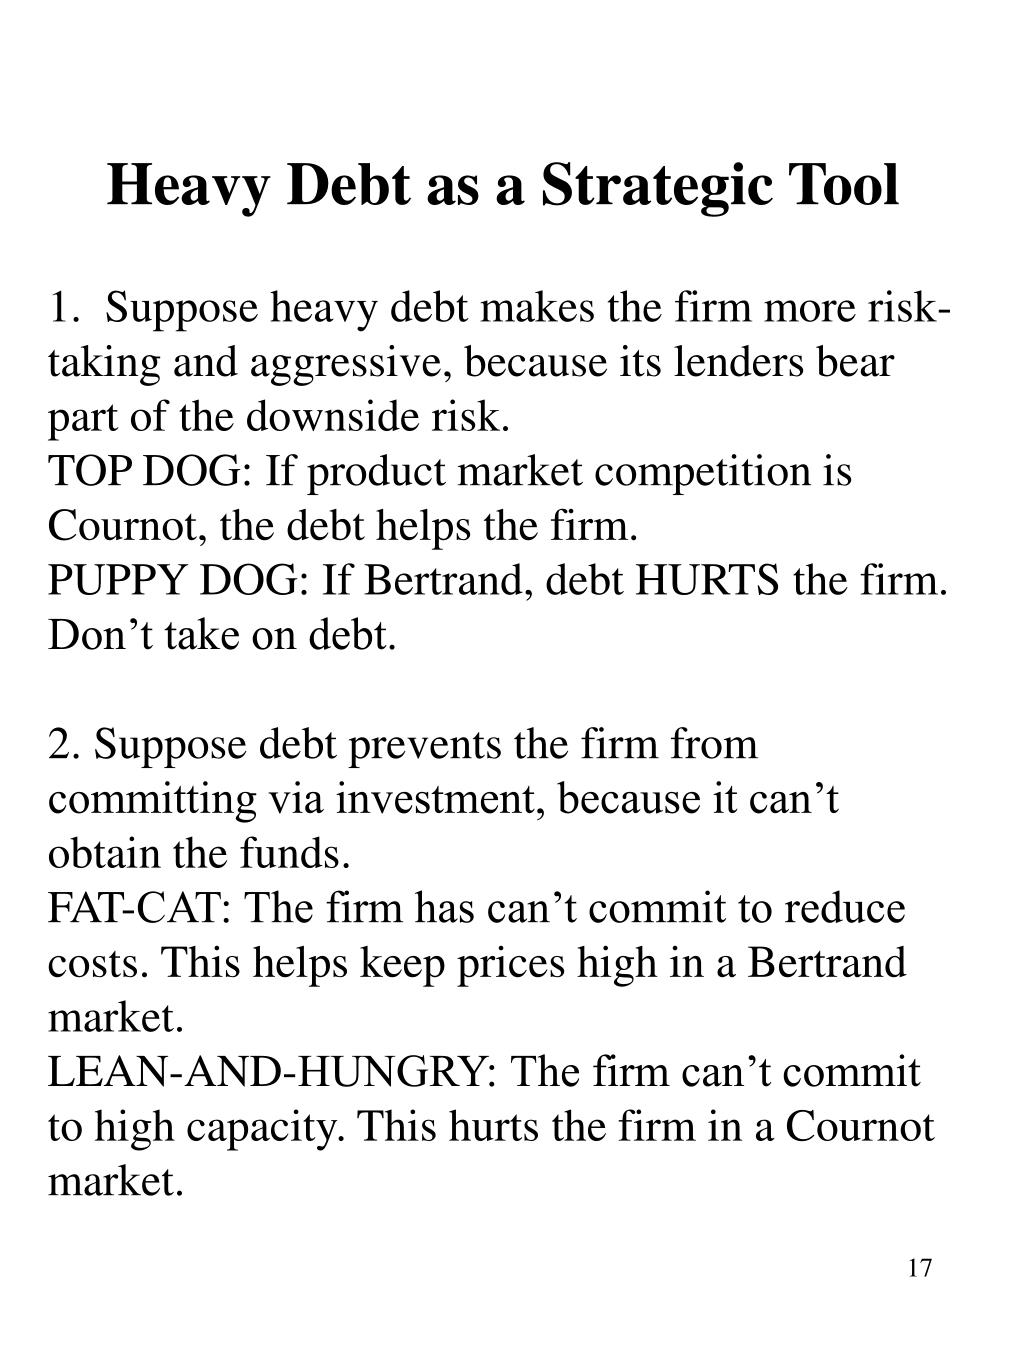 Heavy Debt as a Strategic Tool